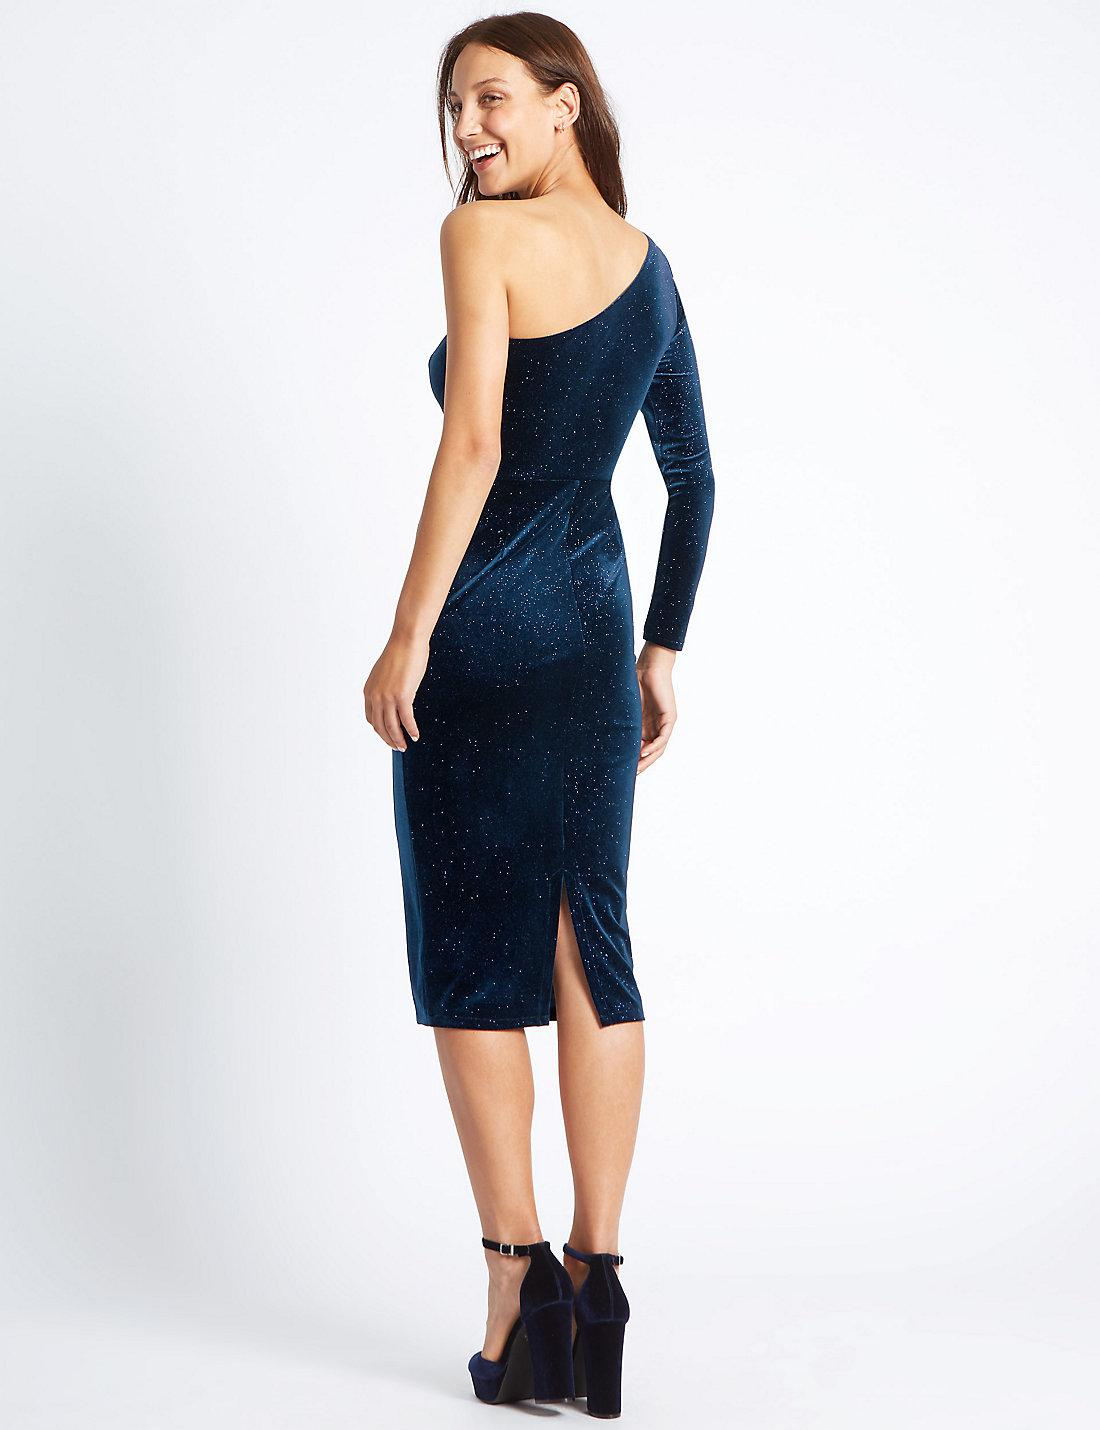 Marks and spencer bodycon dresses for beginners